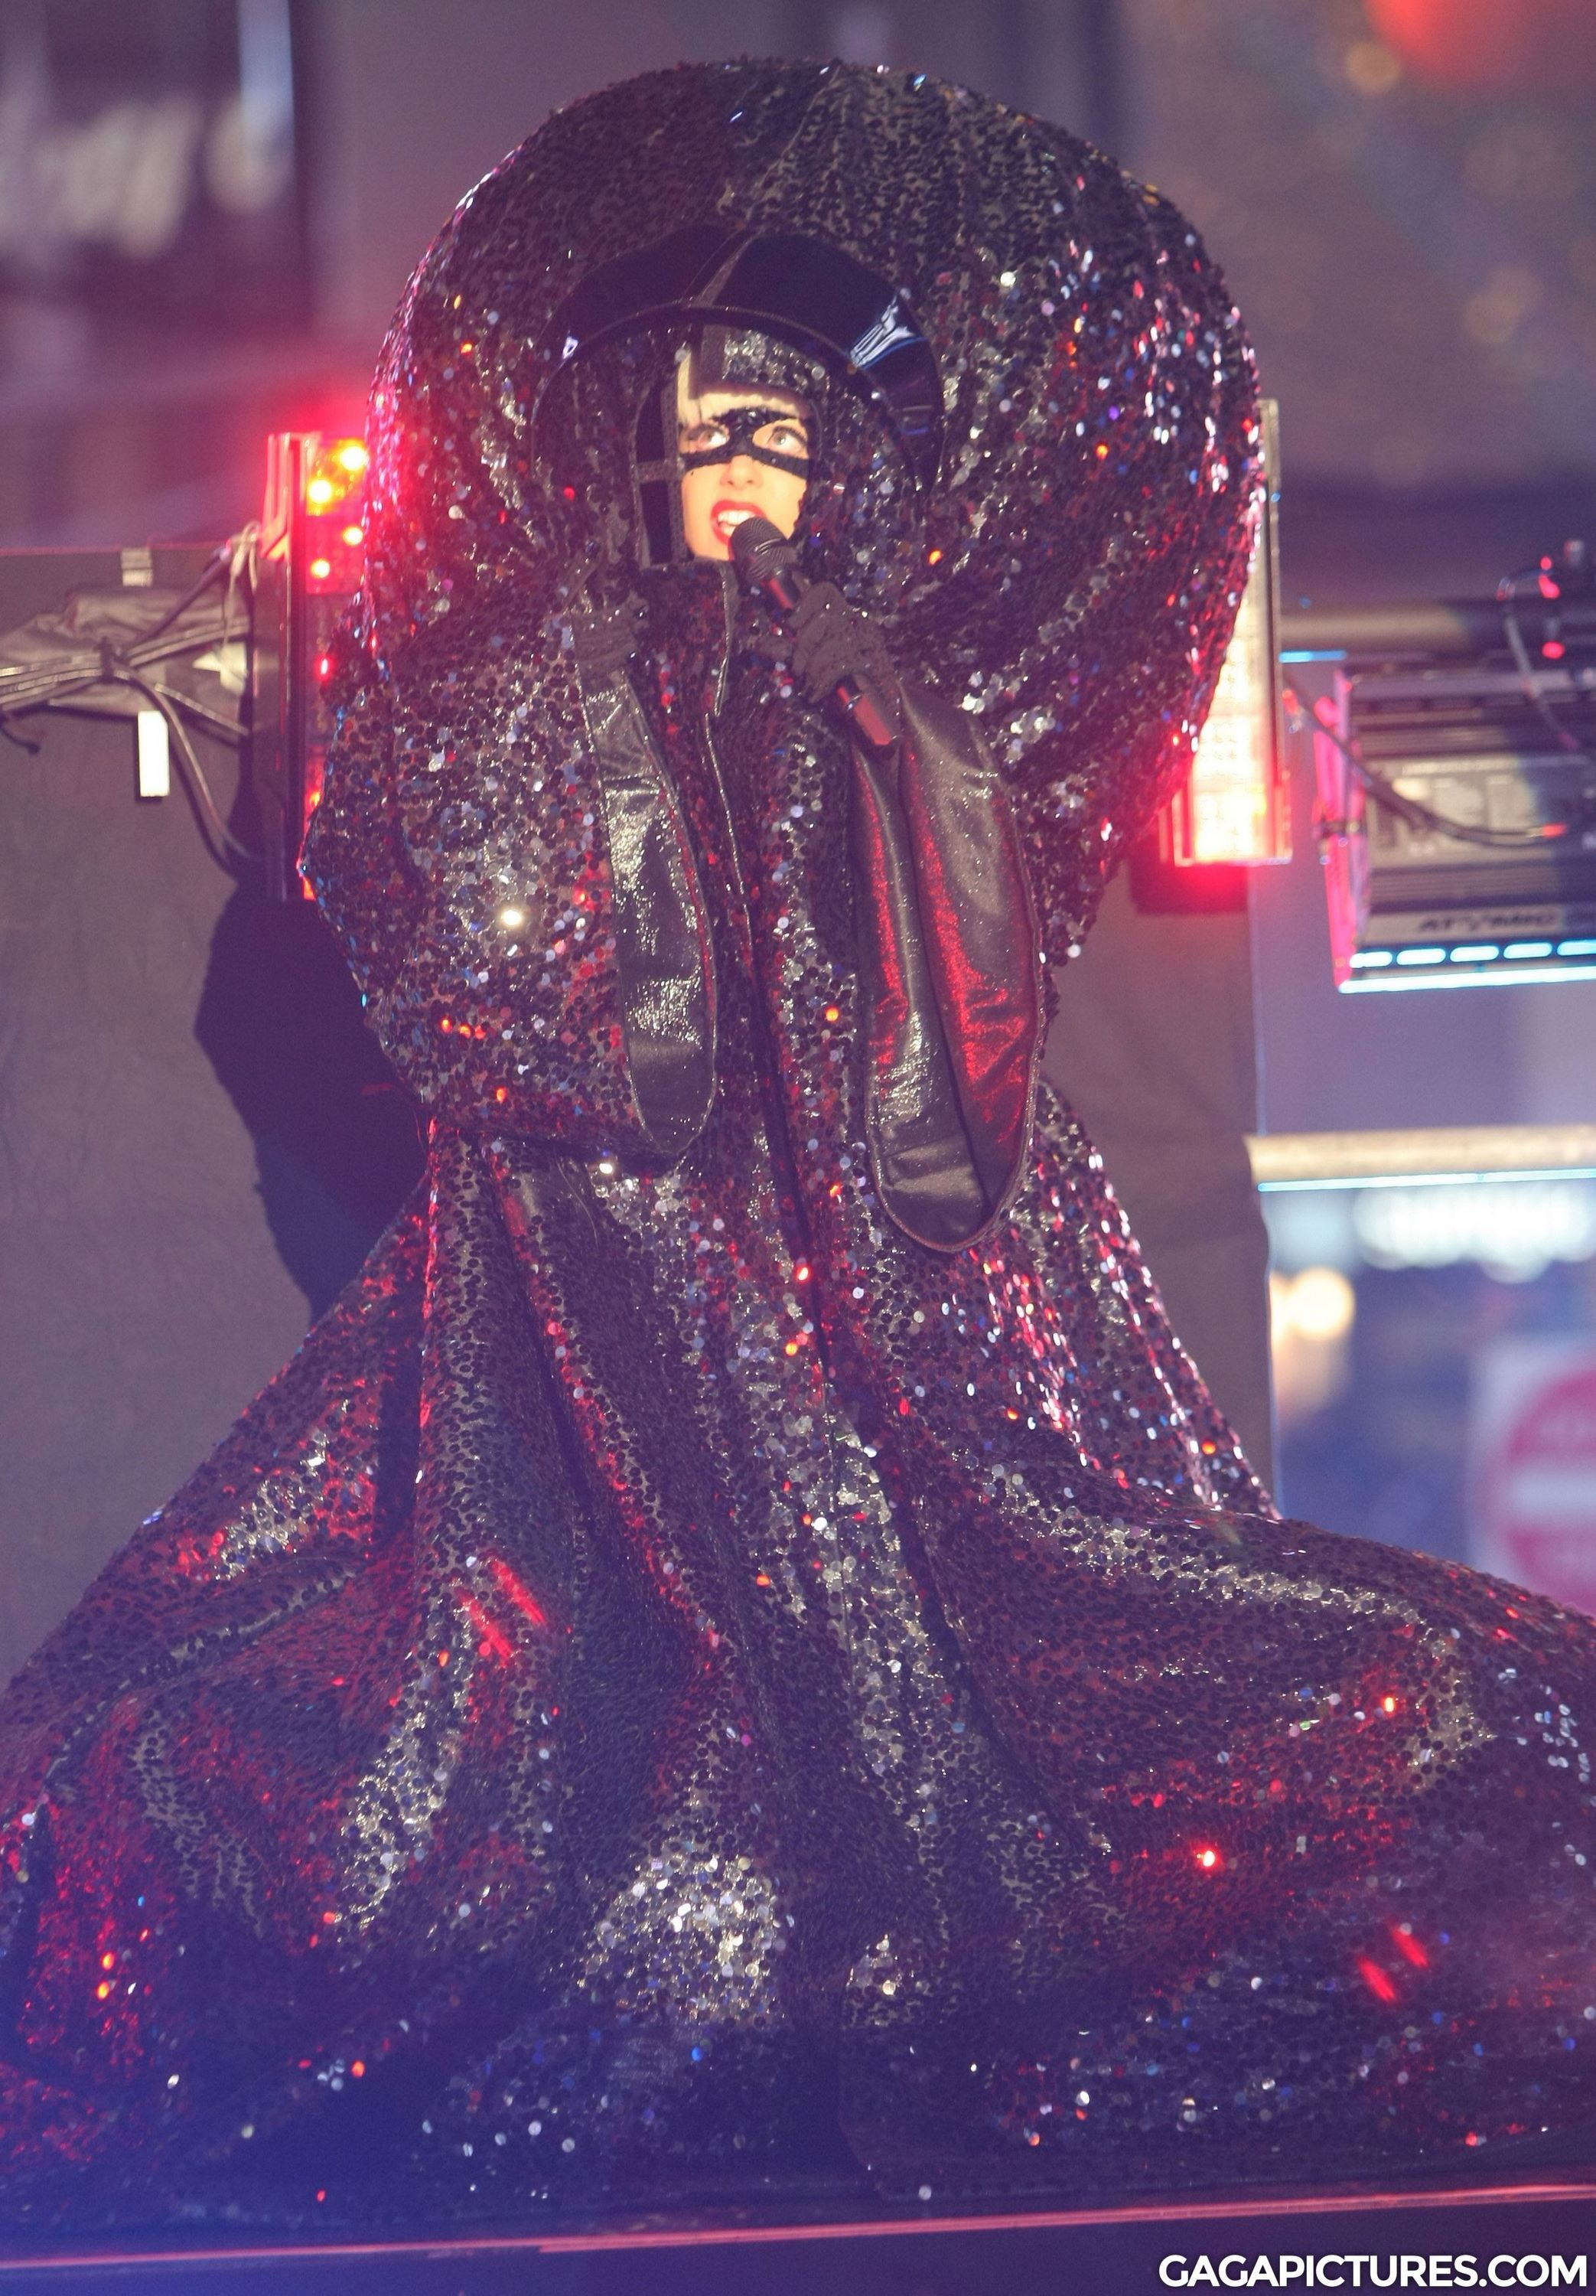 File:12-31-11 Times Square Performance 1.jpg